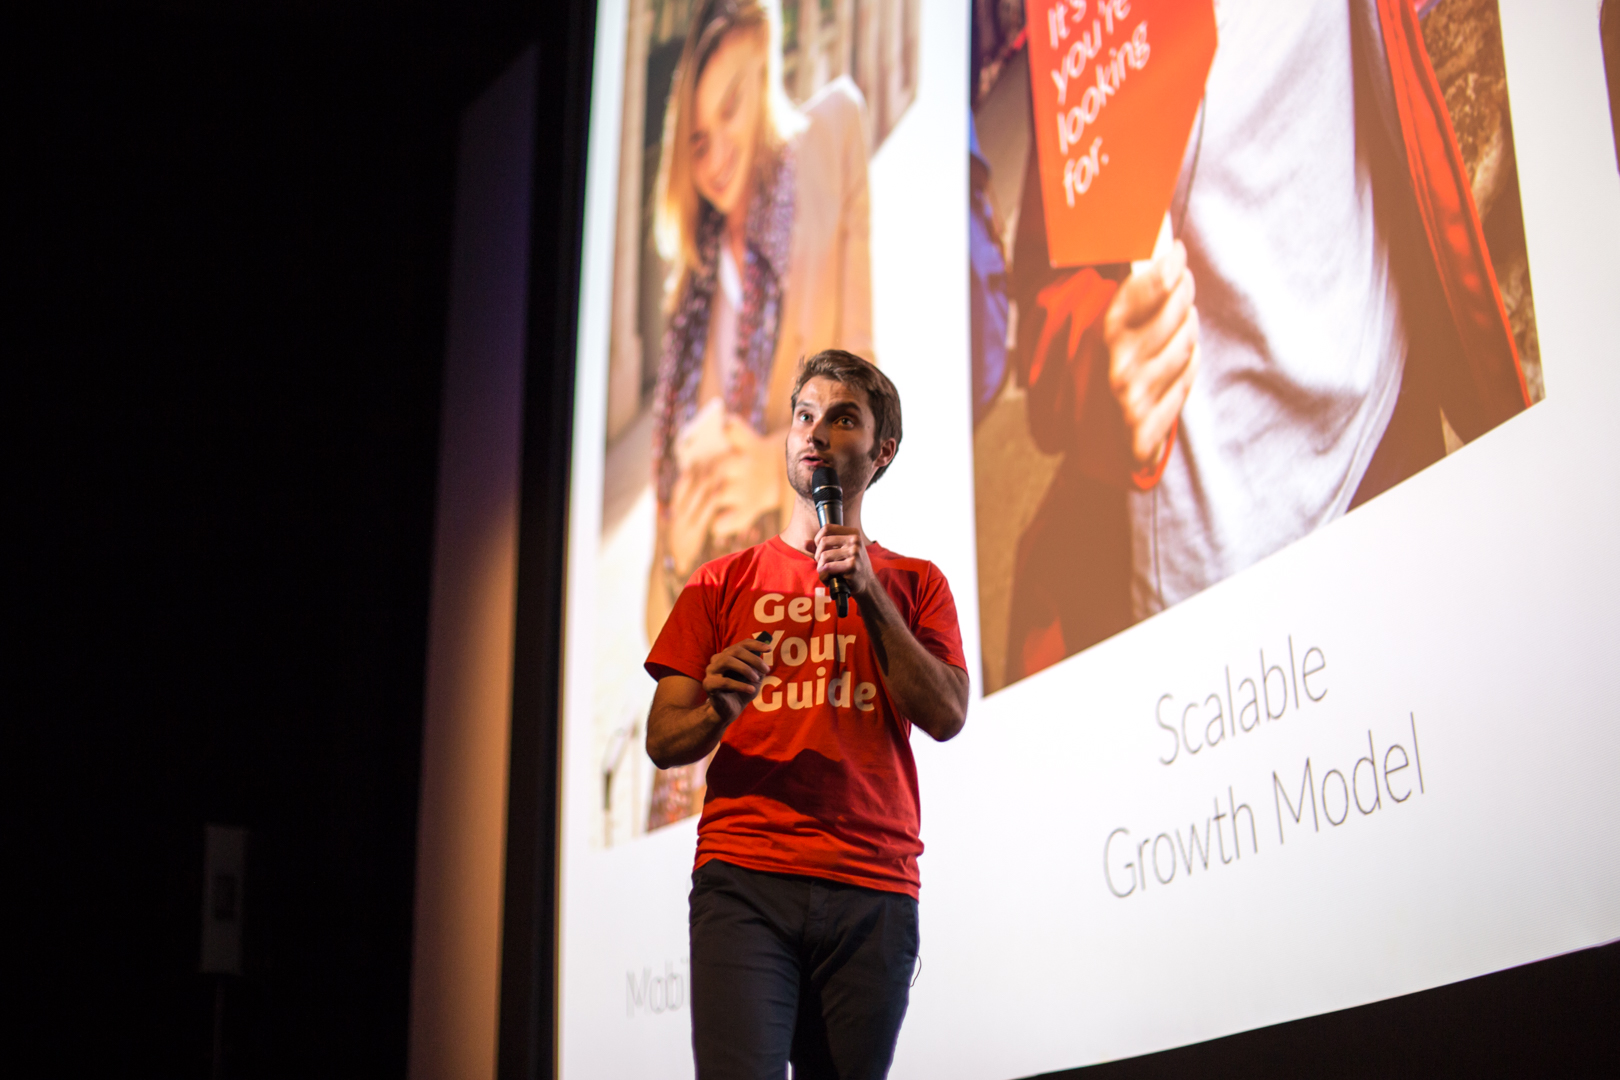 CEO Johannes Reck talking about the past, the present and the future of GetYourGuide.